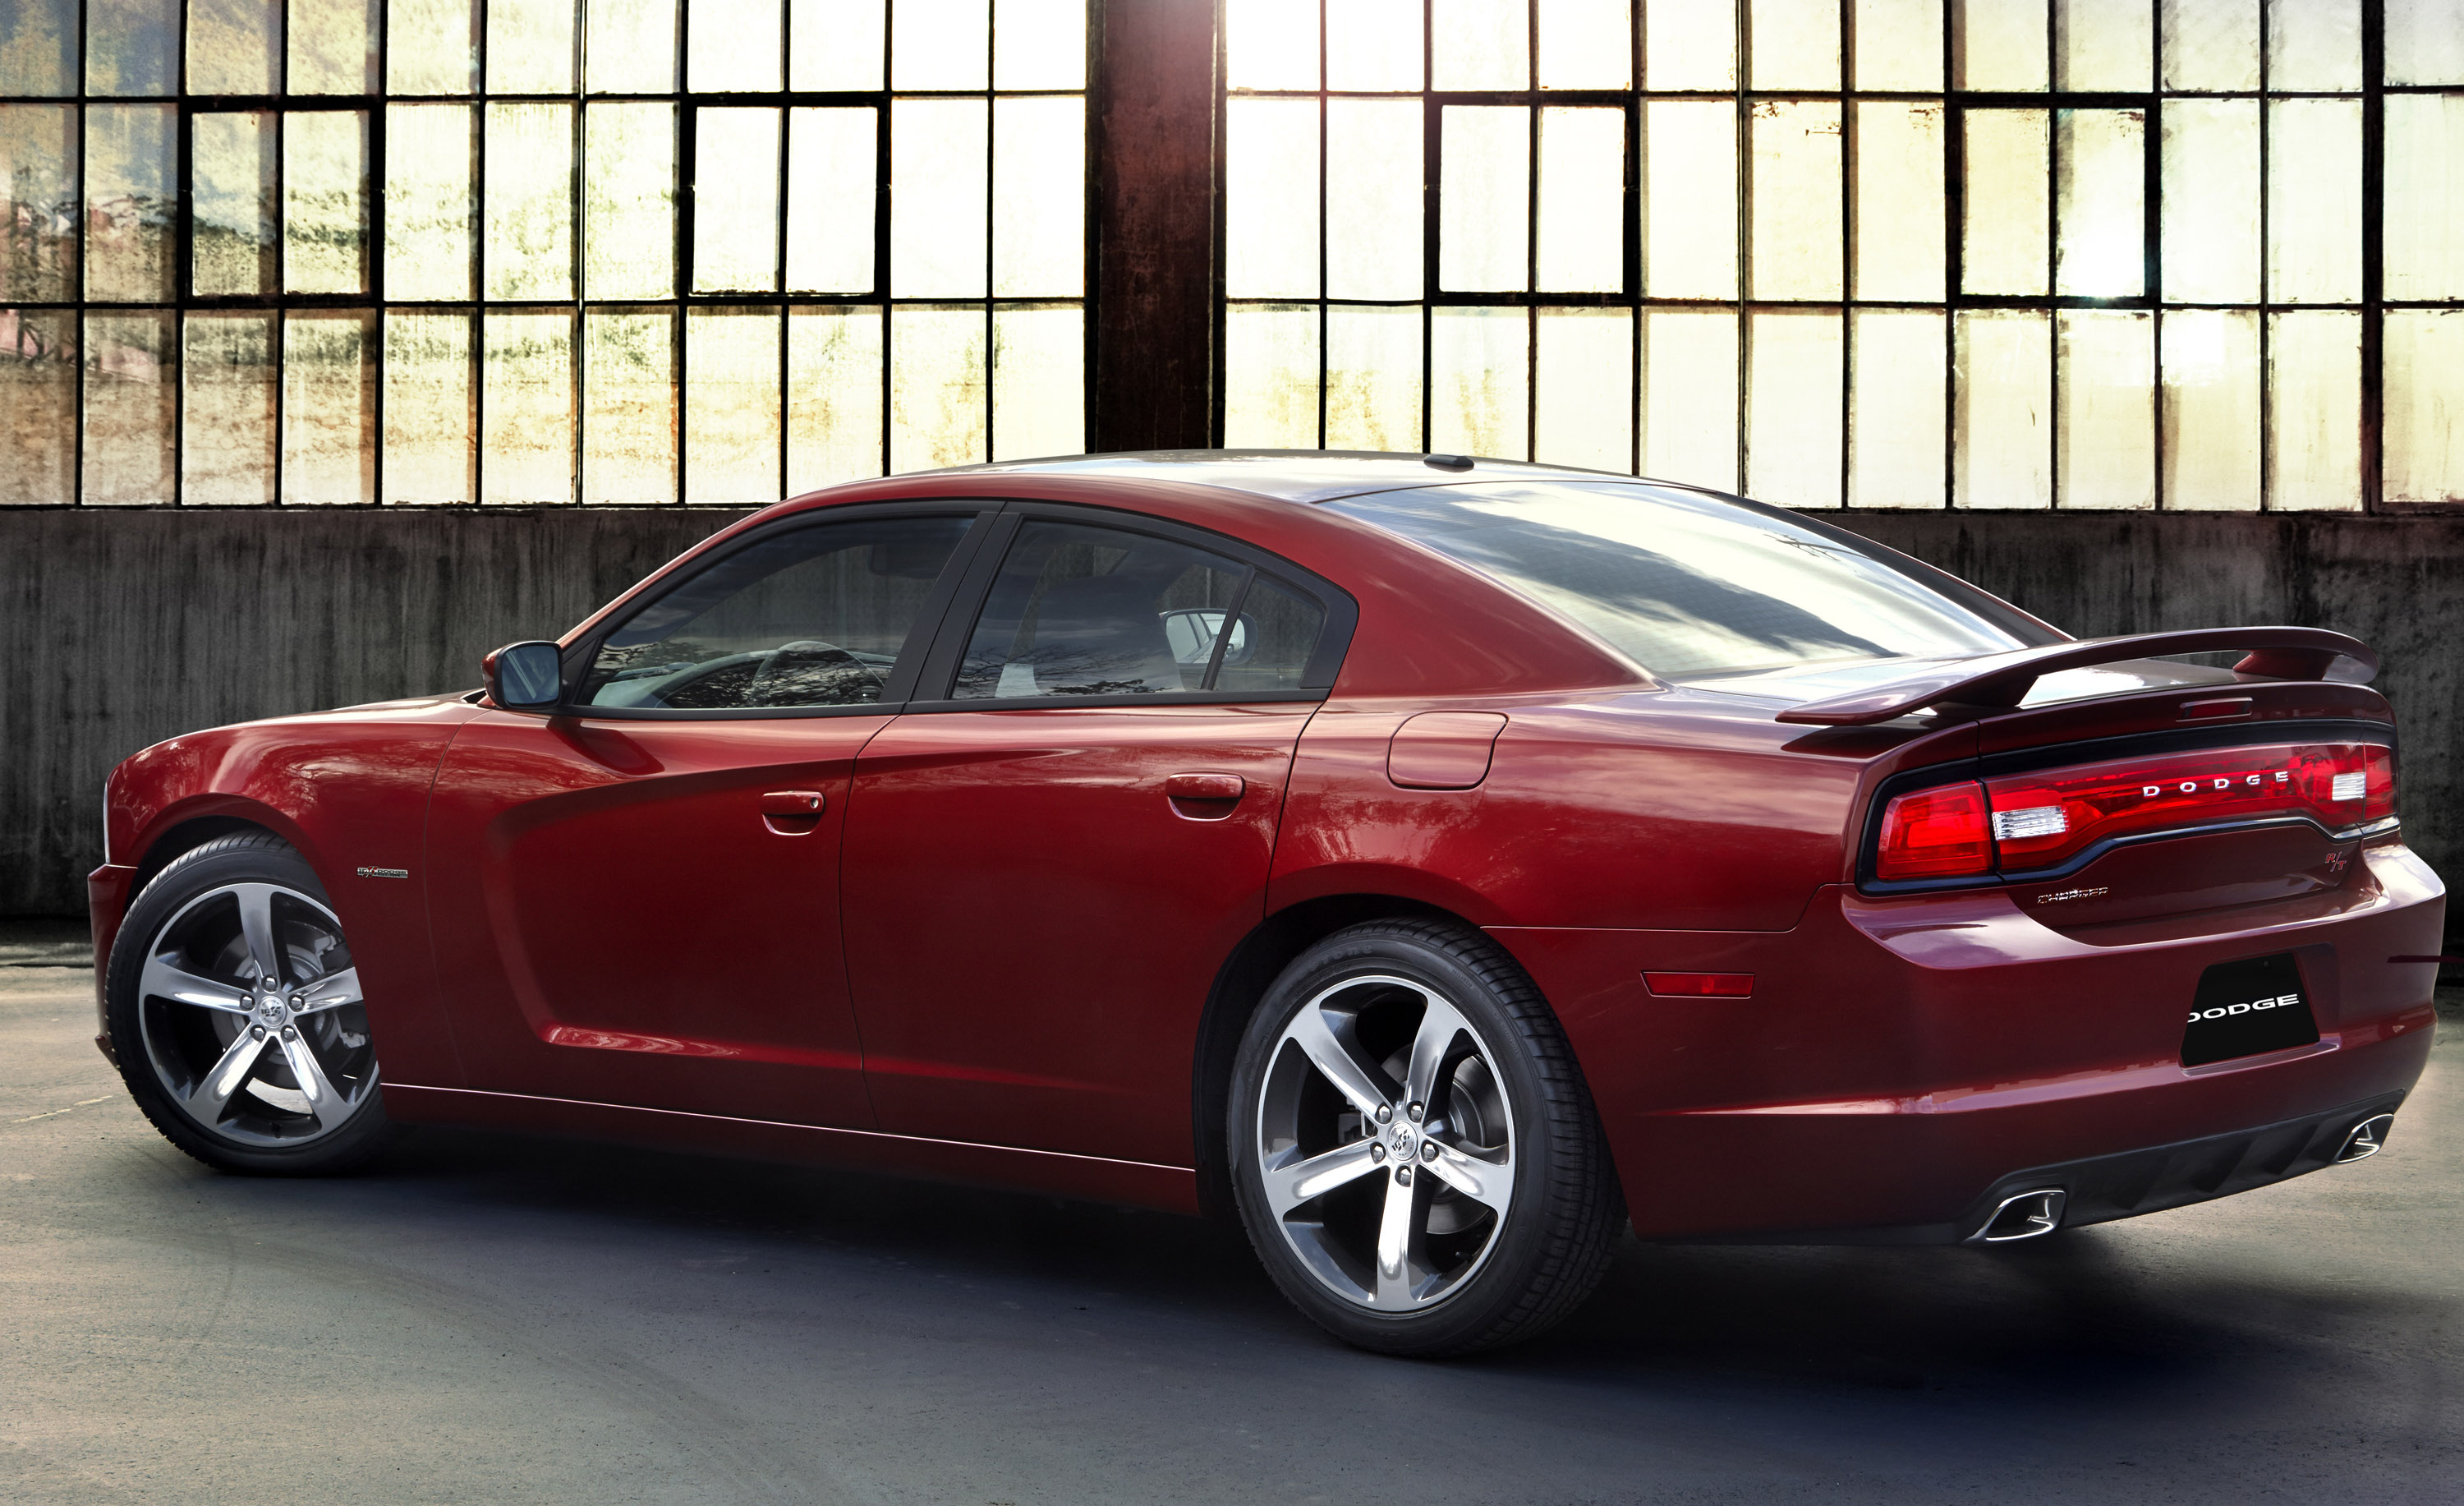 Toyota Of Pullman >> 2014 Dodge Charger 100th Anniversary Edition - Picture 91412